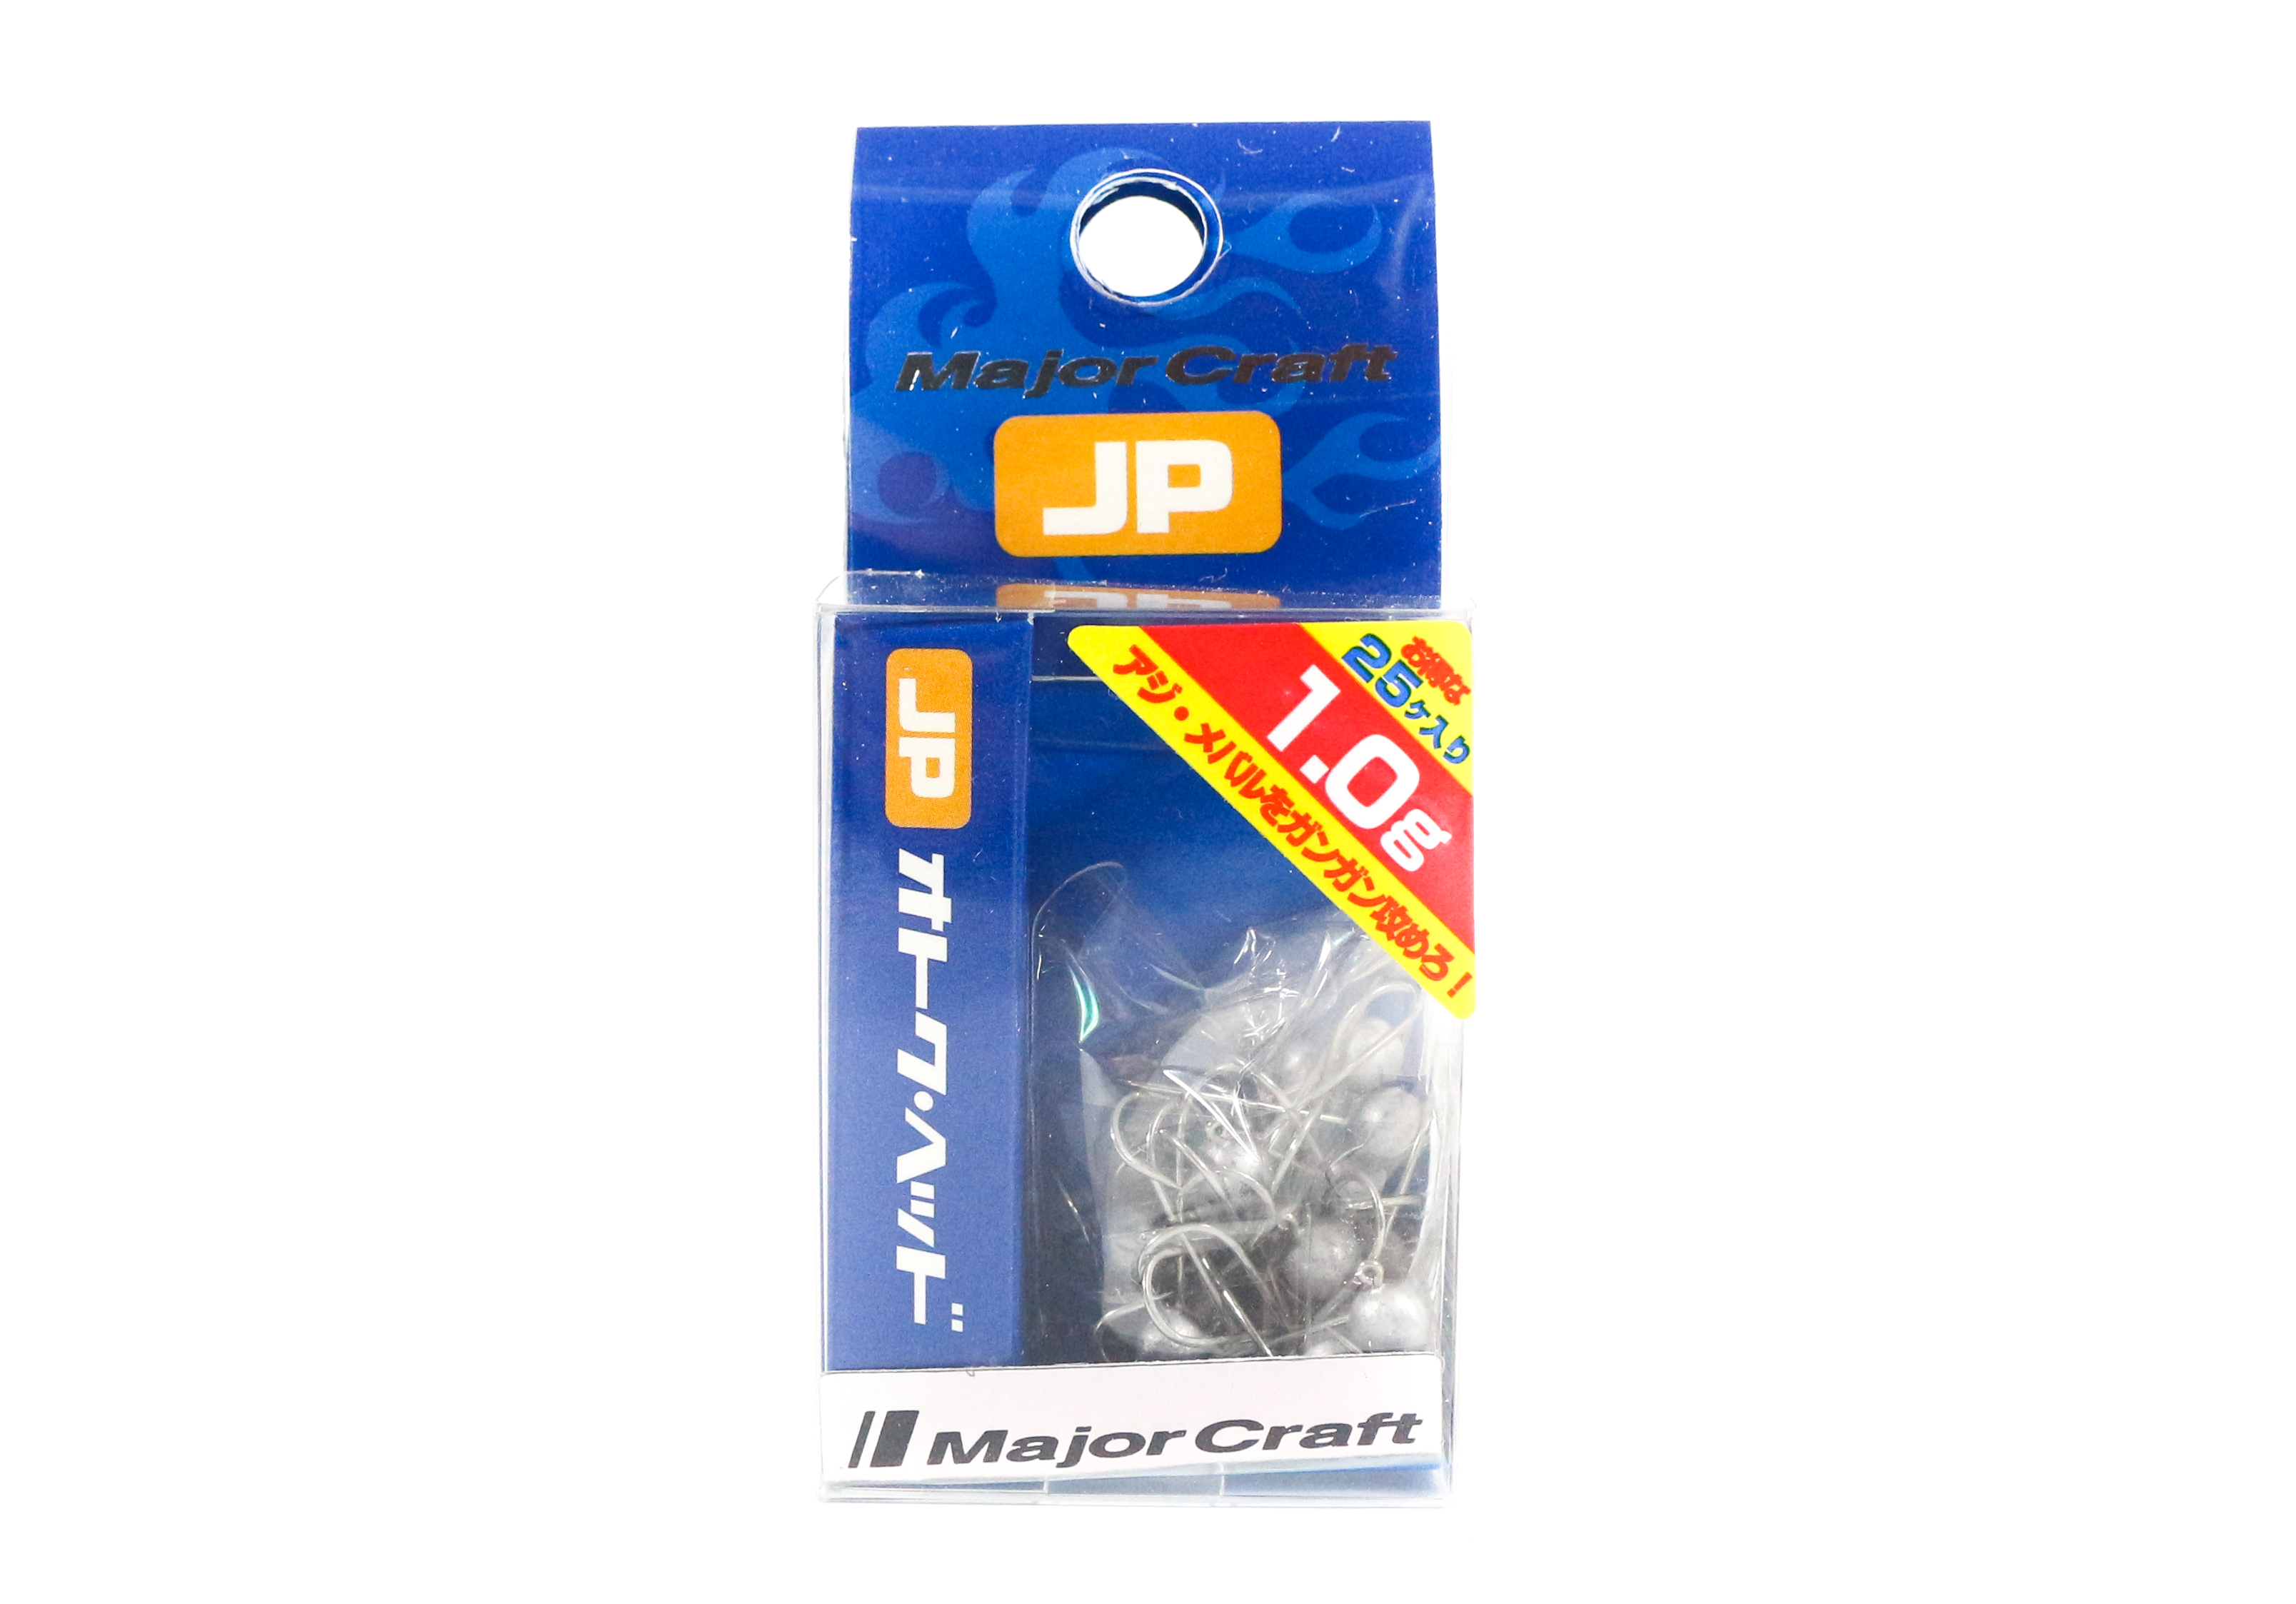 Major Craft Jig Head OTHD-1.0 grams Size 8 25 piece pack (6504)